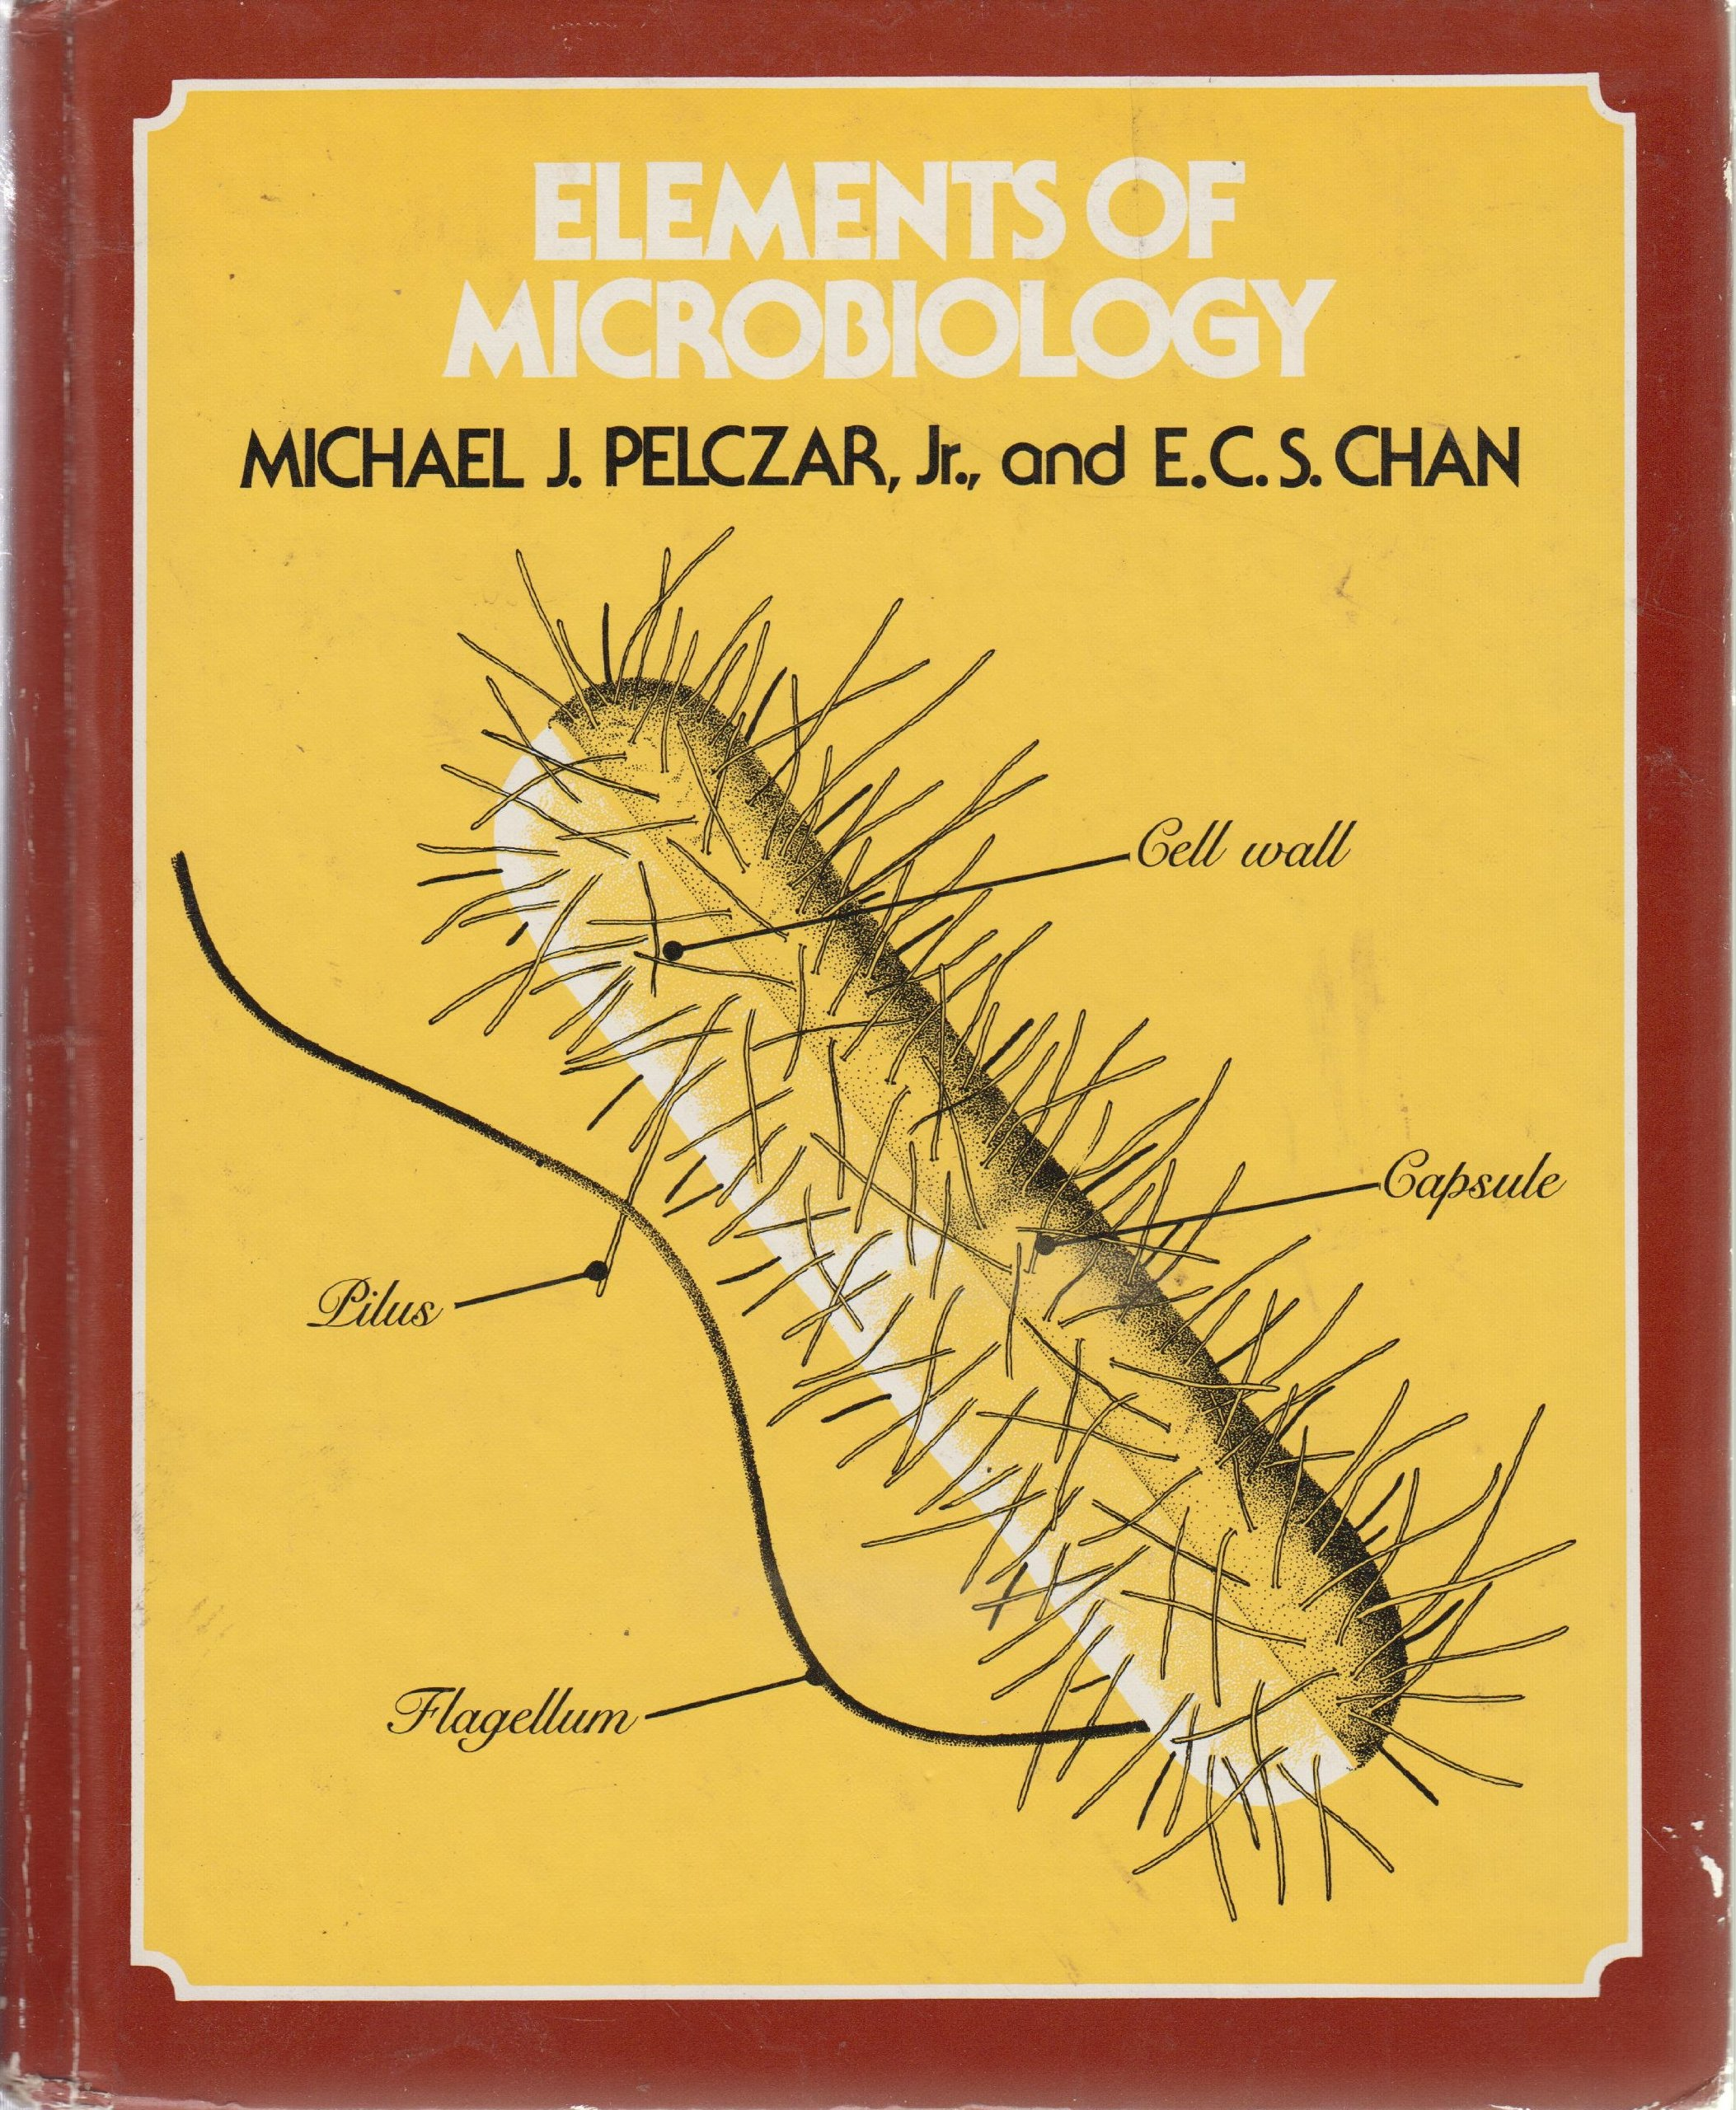 Buy Elements of Microbiology Book Online at Low Prices in India | Elements  of Microbiology Reviews & Ratings - Amazon.in